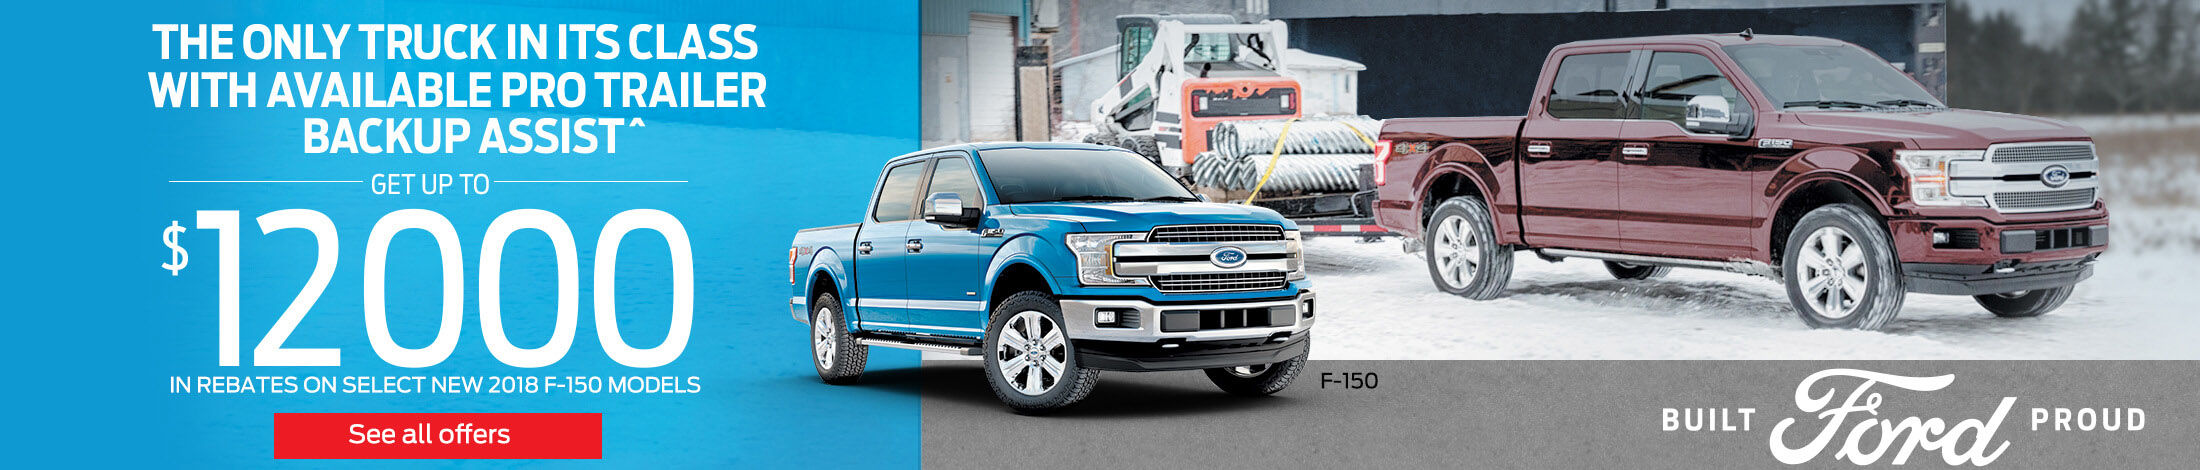 Ford Rebates on F-150 2018